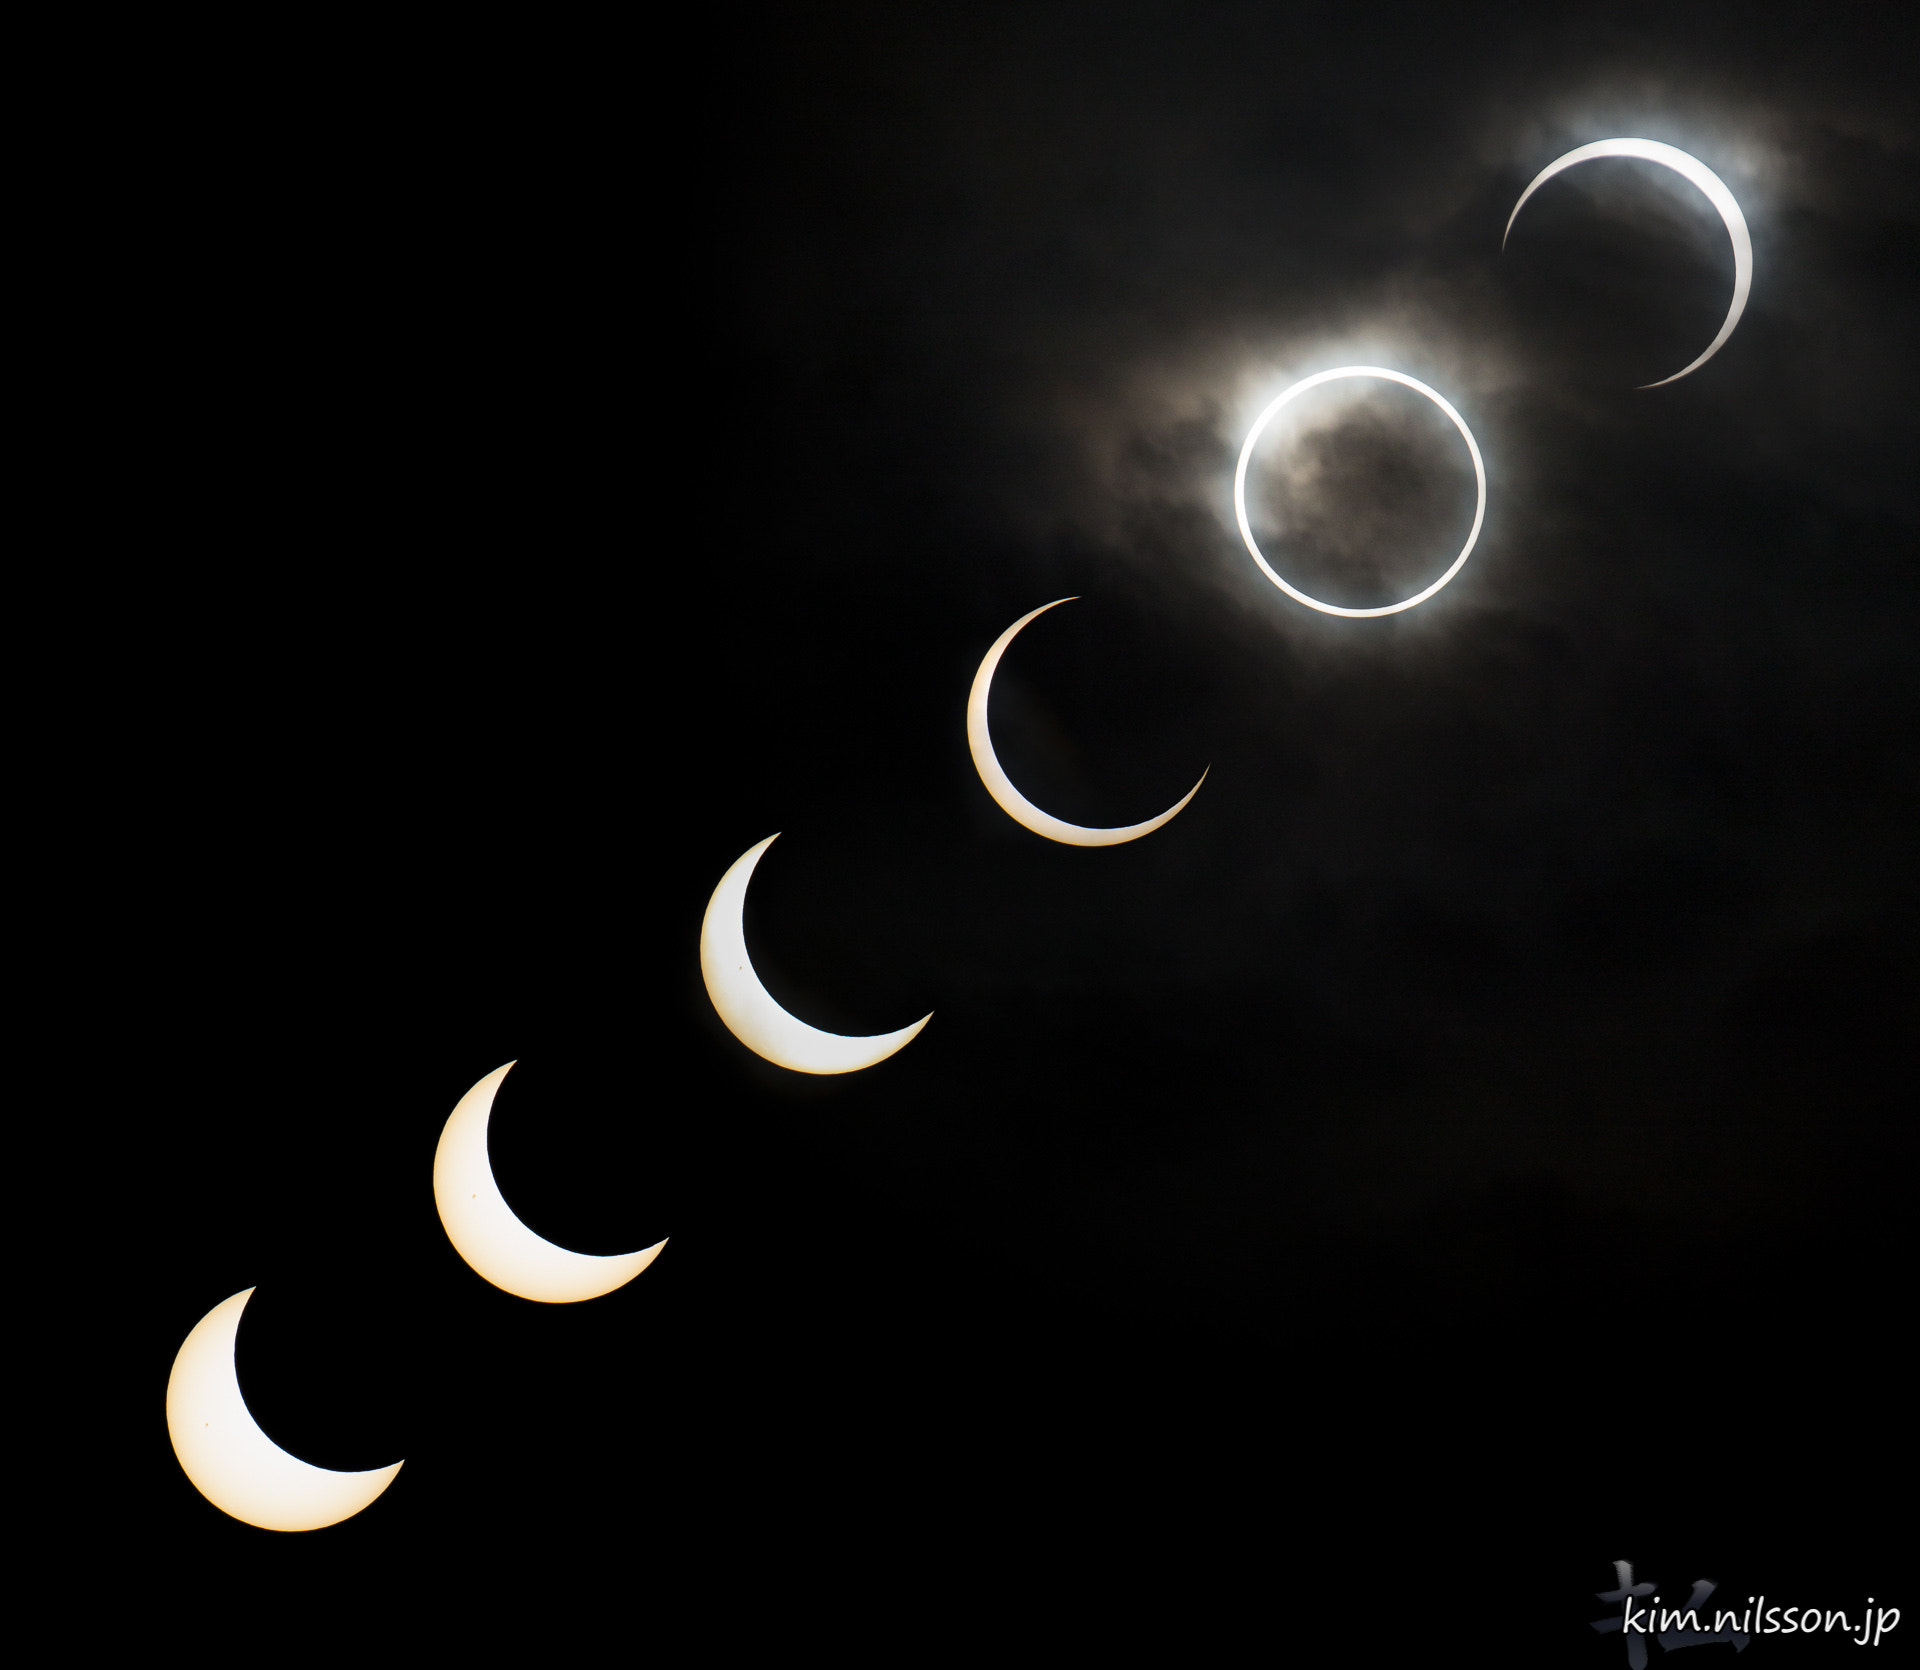 Photograph Eclipse (sequence) by Kim Nilsson on 500px